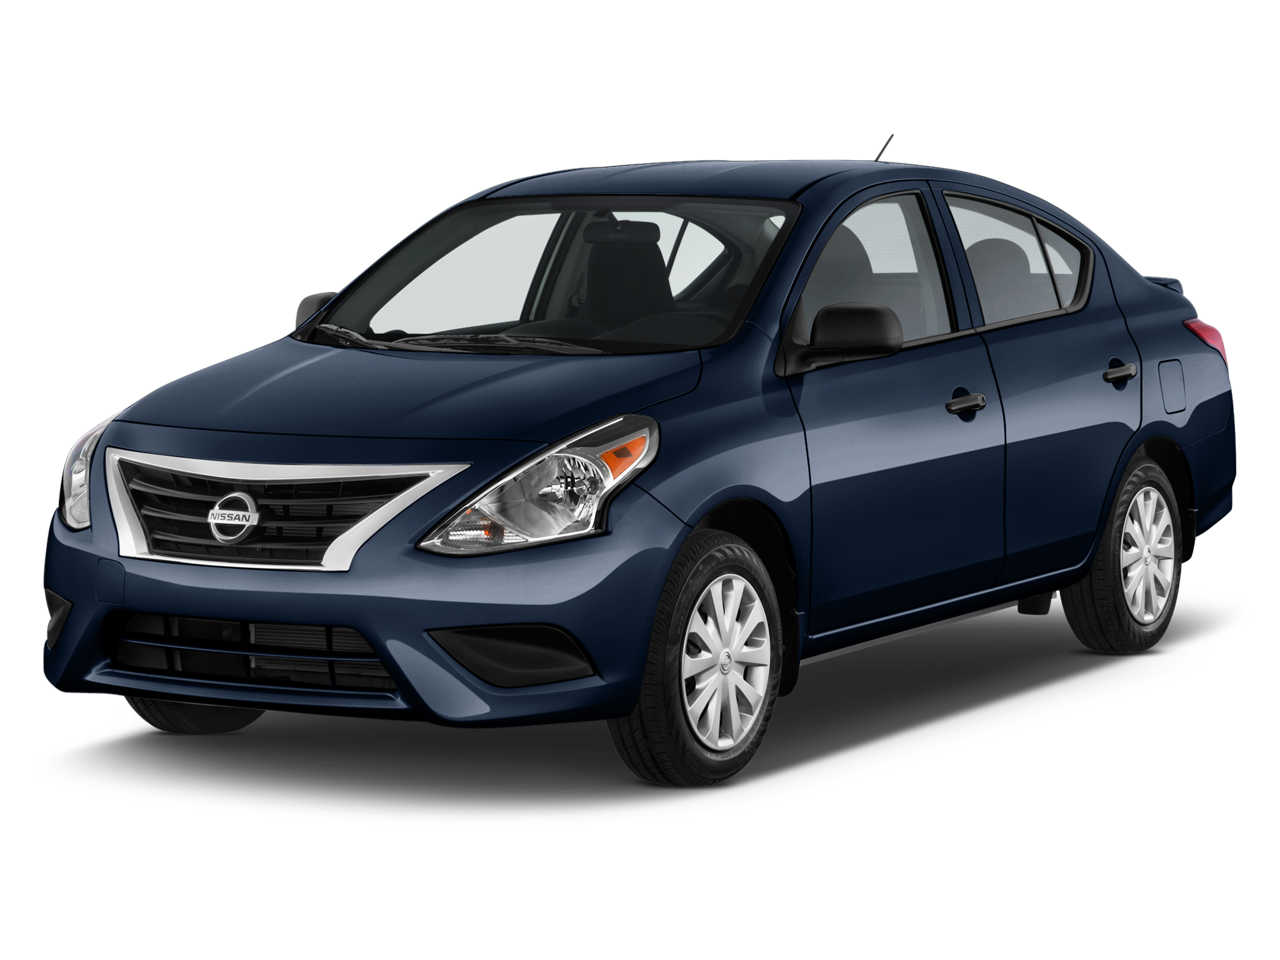 new 2017 nissan versa 1 6 s near renton wa younker nissan. Black Bedroom Furniture Sets. Home Design Ideas